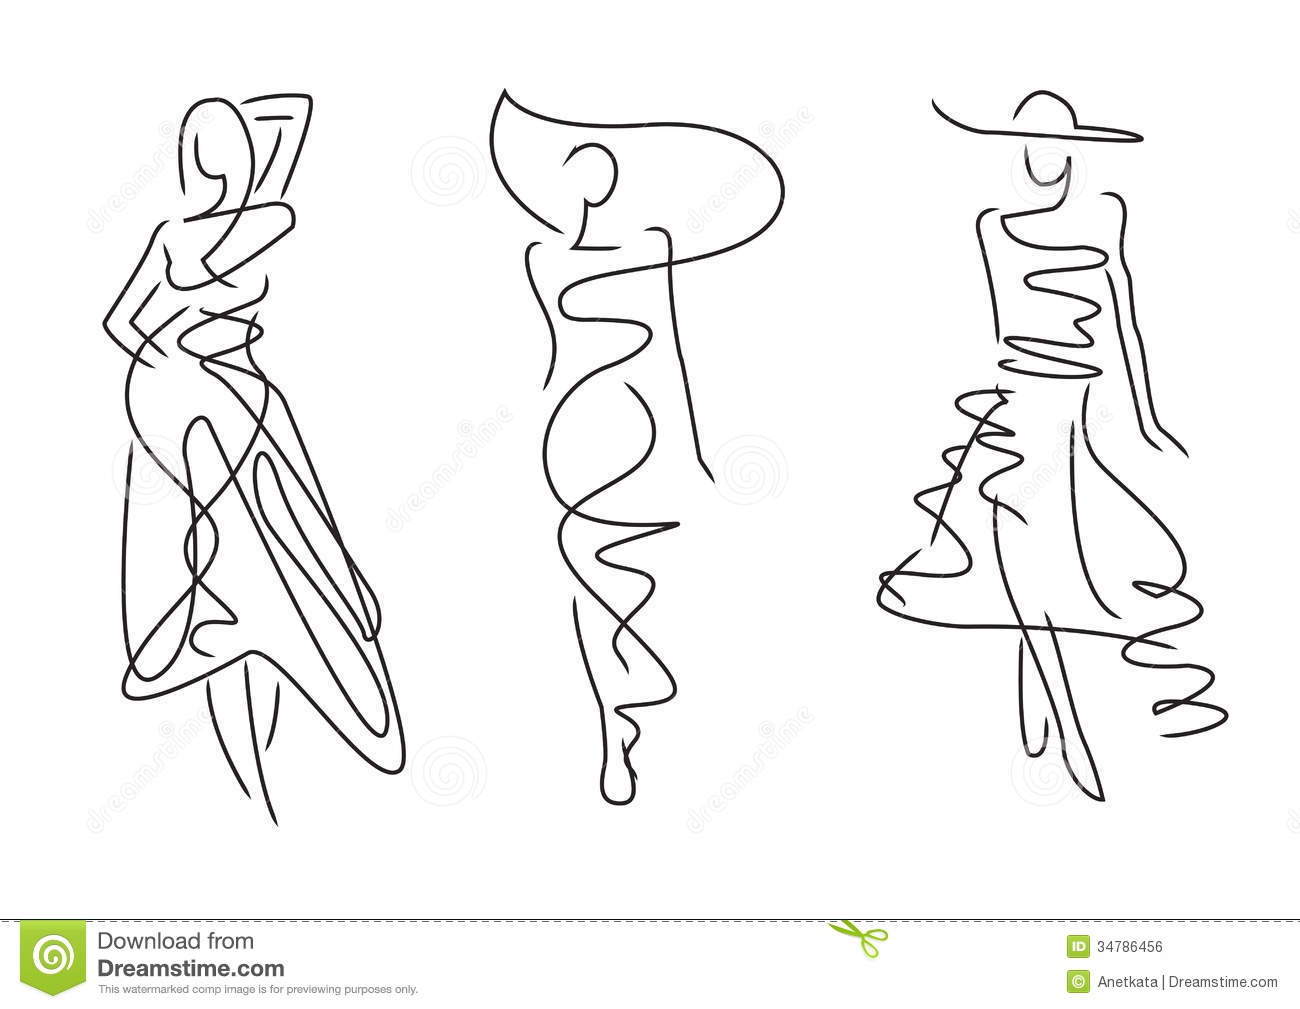 It's just an image of Smart Fashion Poses Drawing